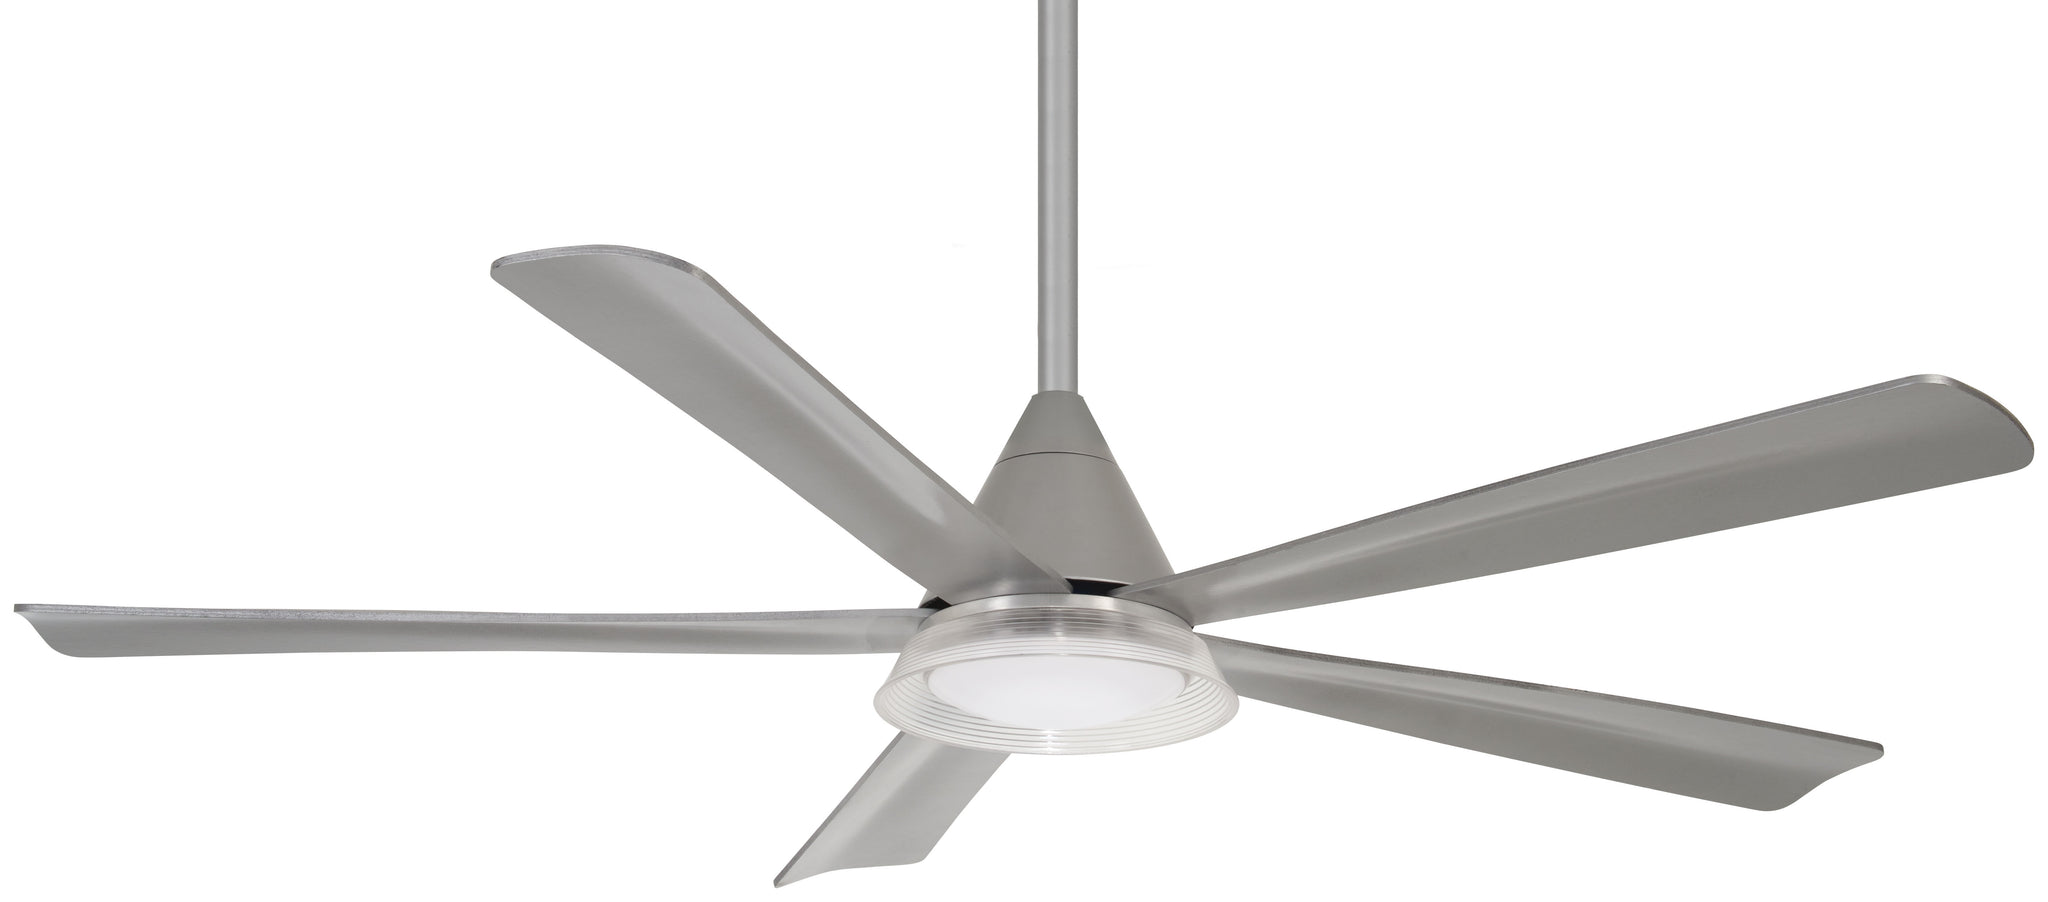 Cone Exterior Fan with LED Light, F541L - FLC Select